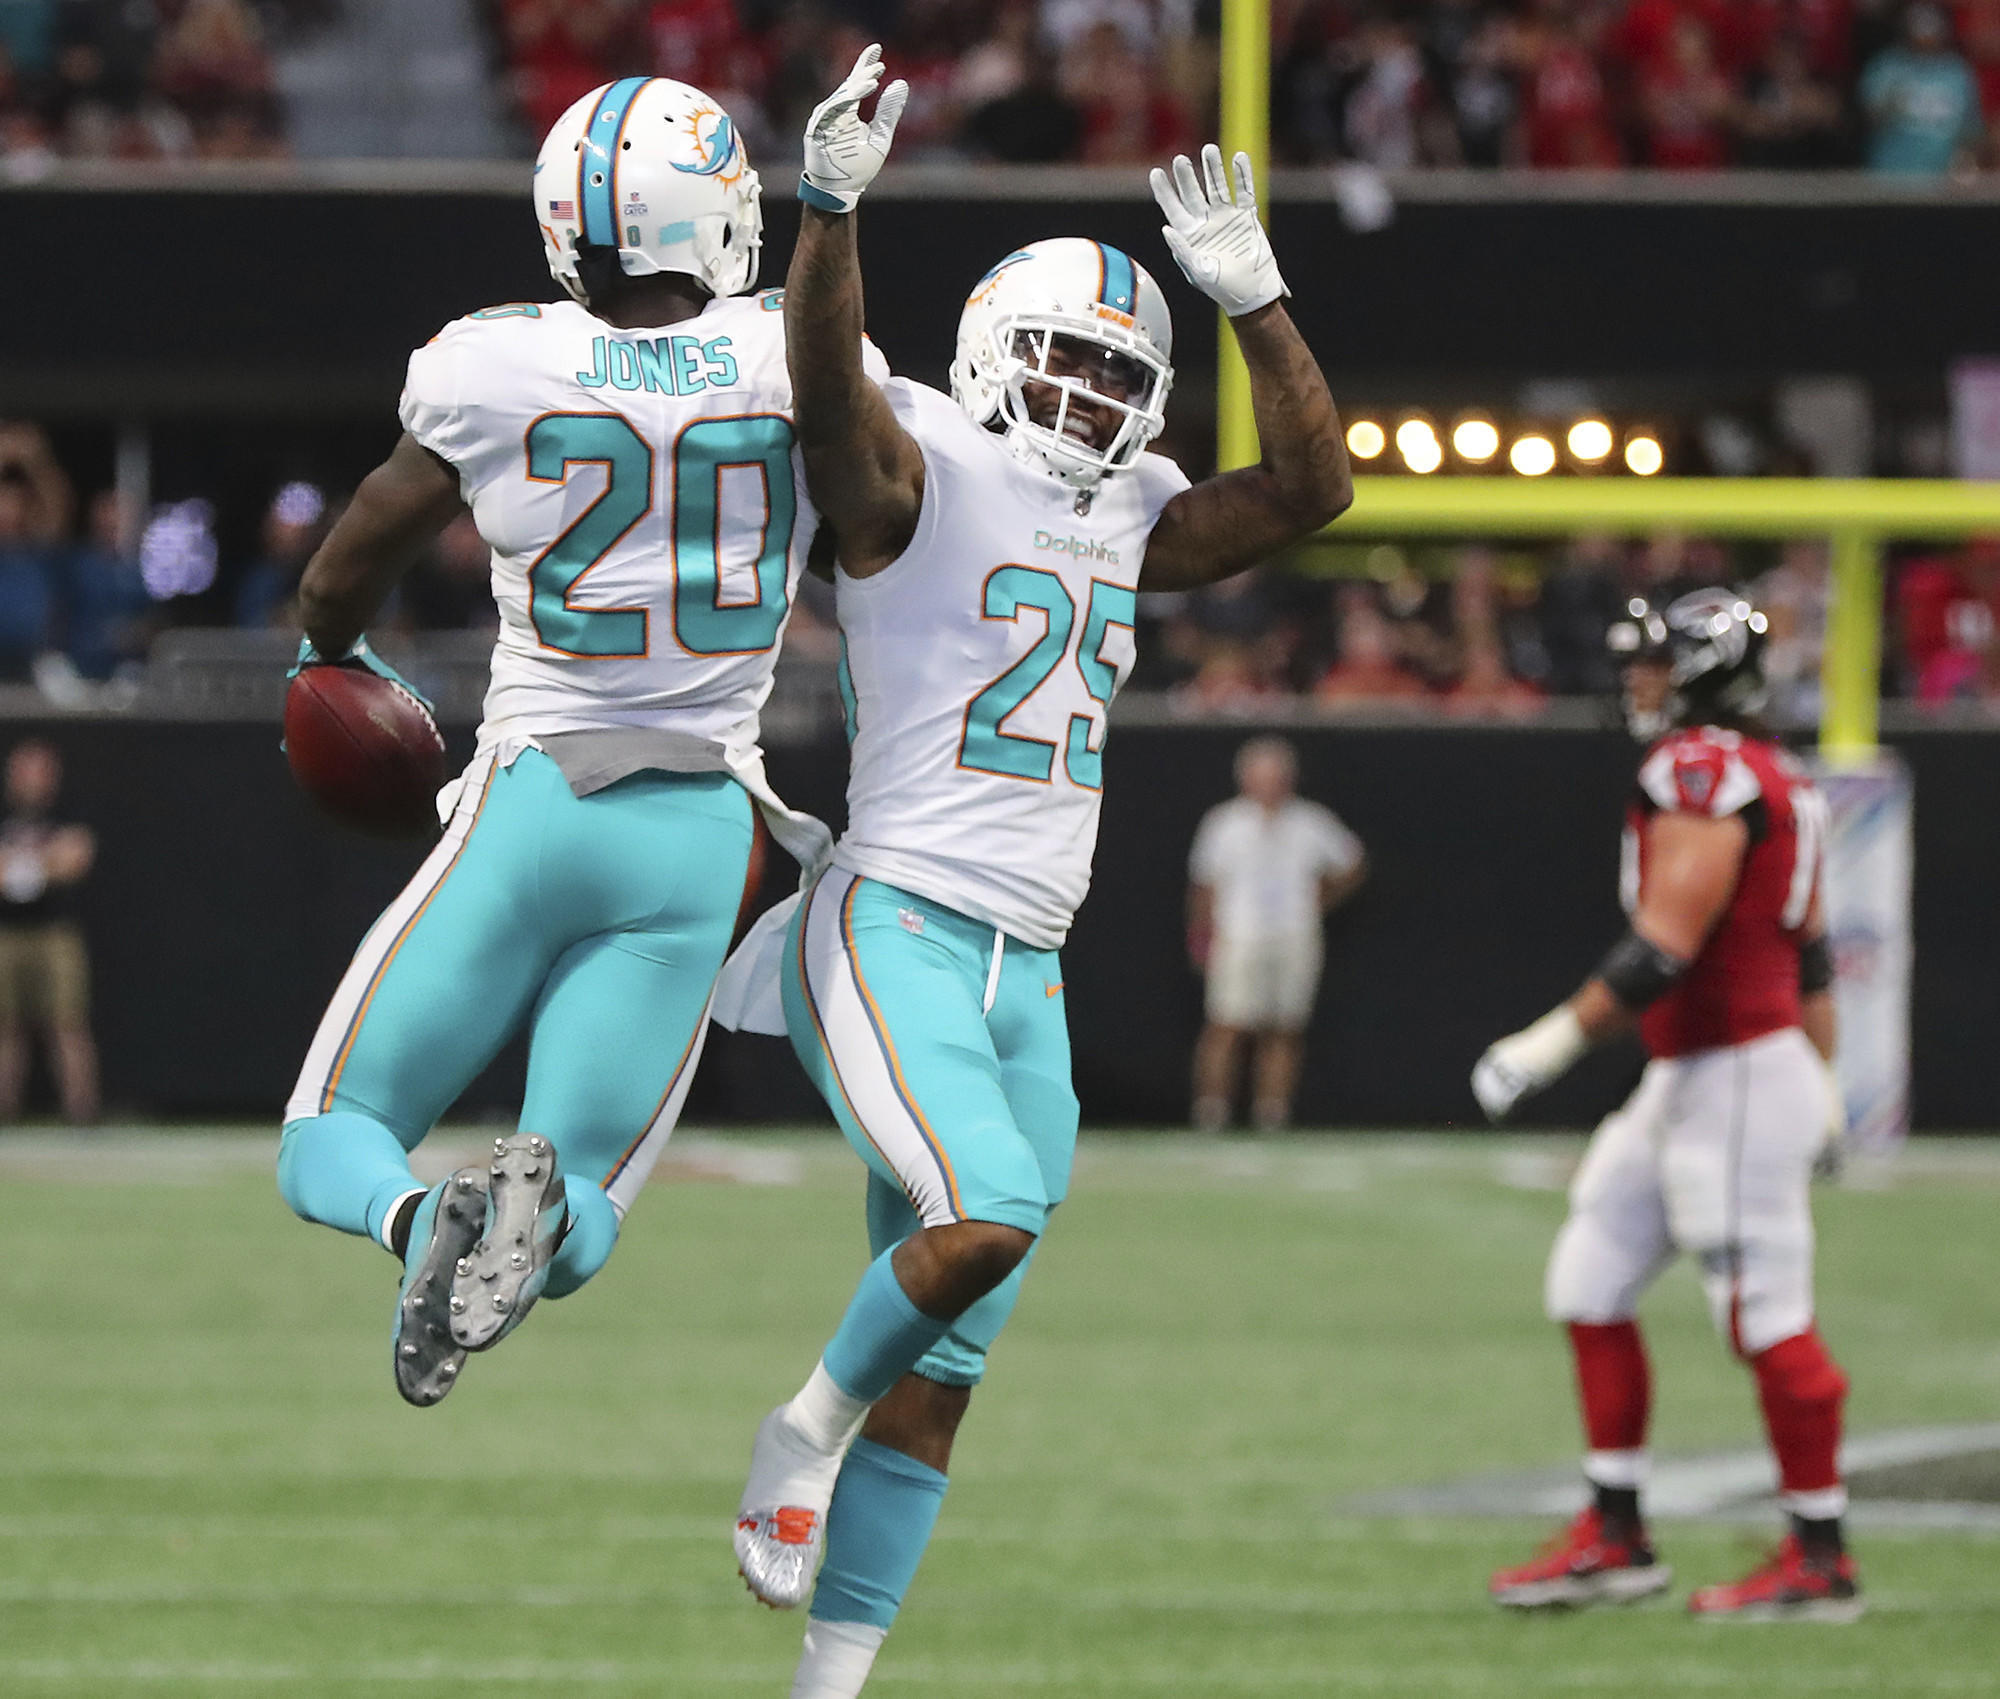 Fl-sp-dolphins-notes-20171117